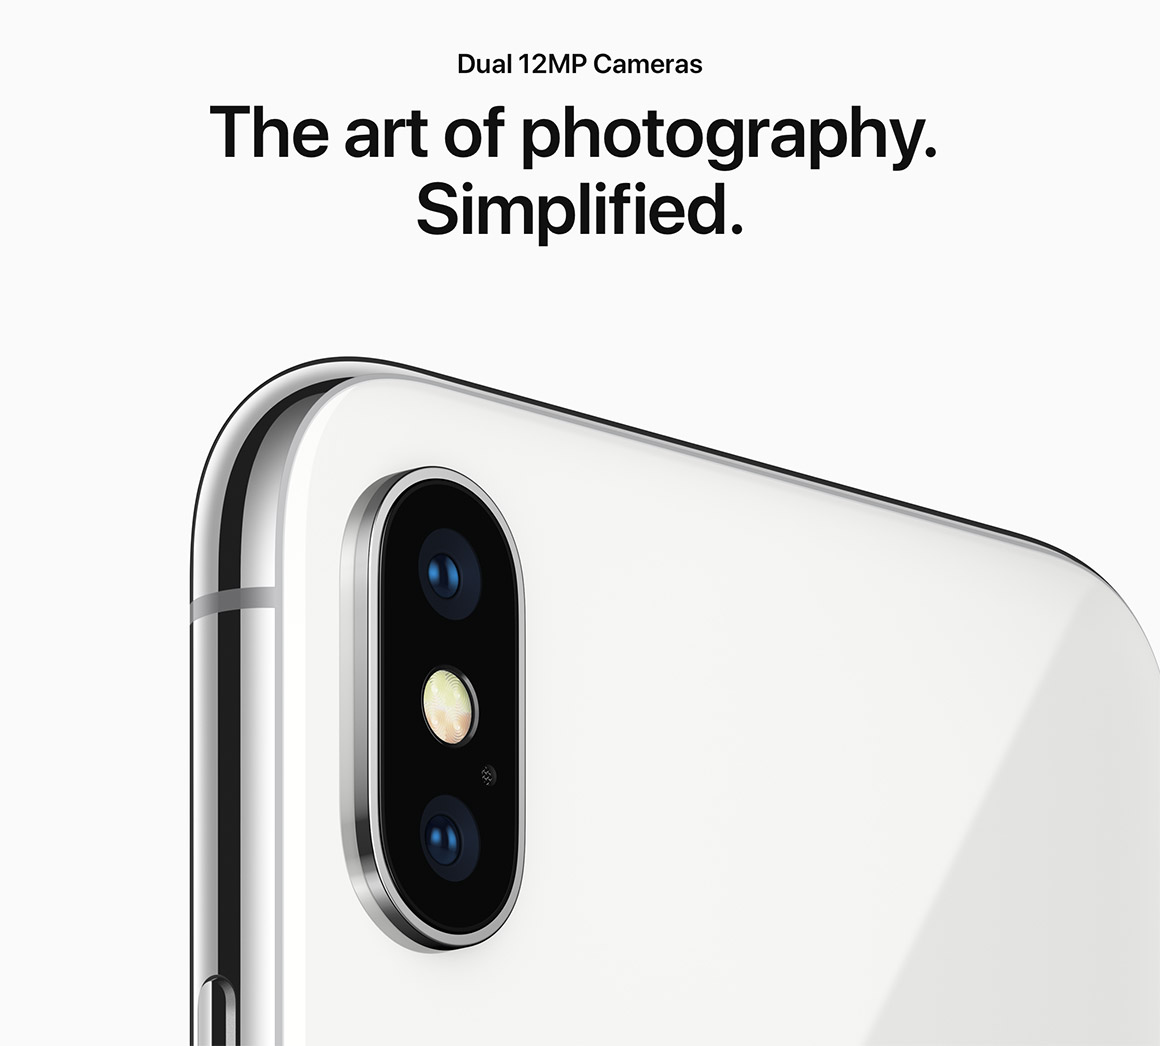 The art of photography. Simplified.